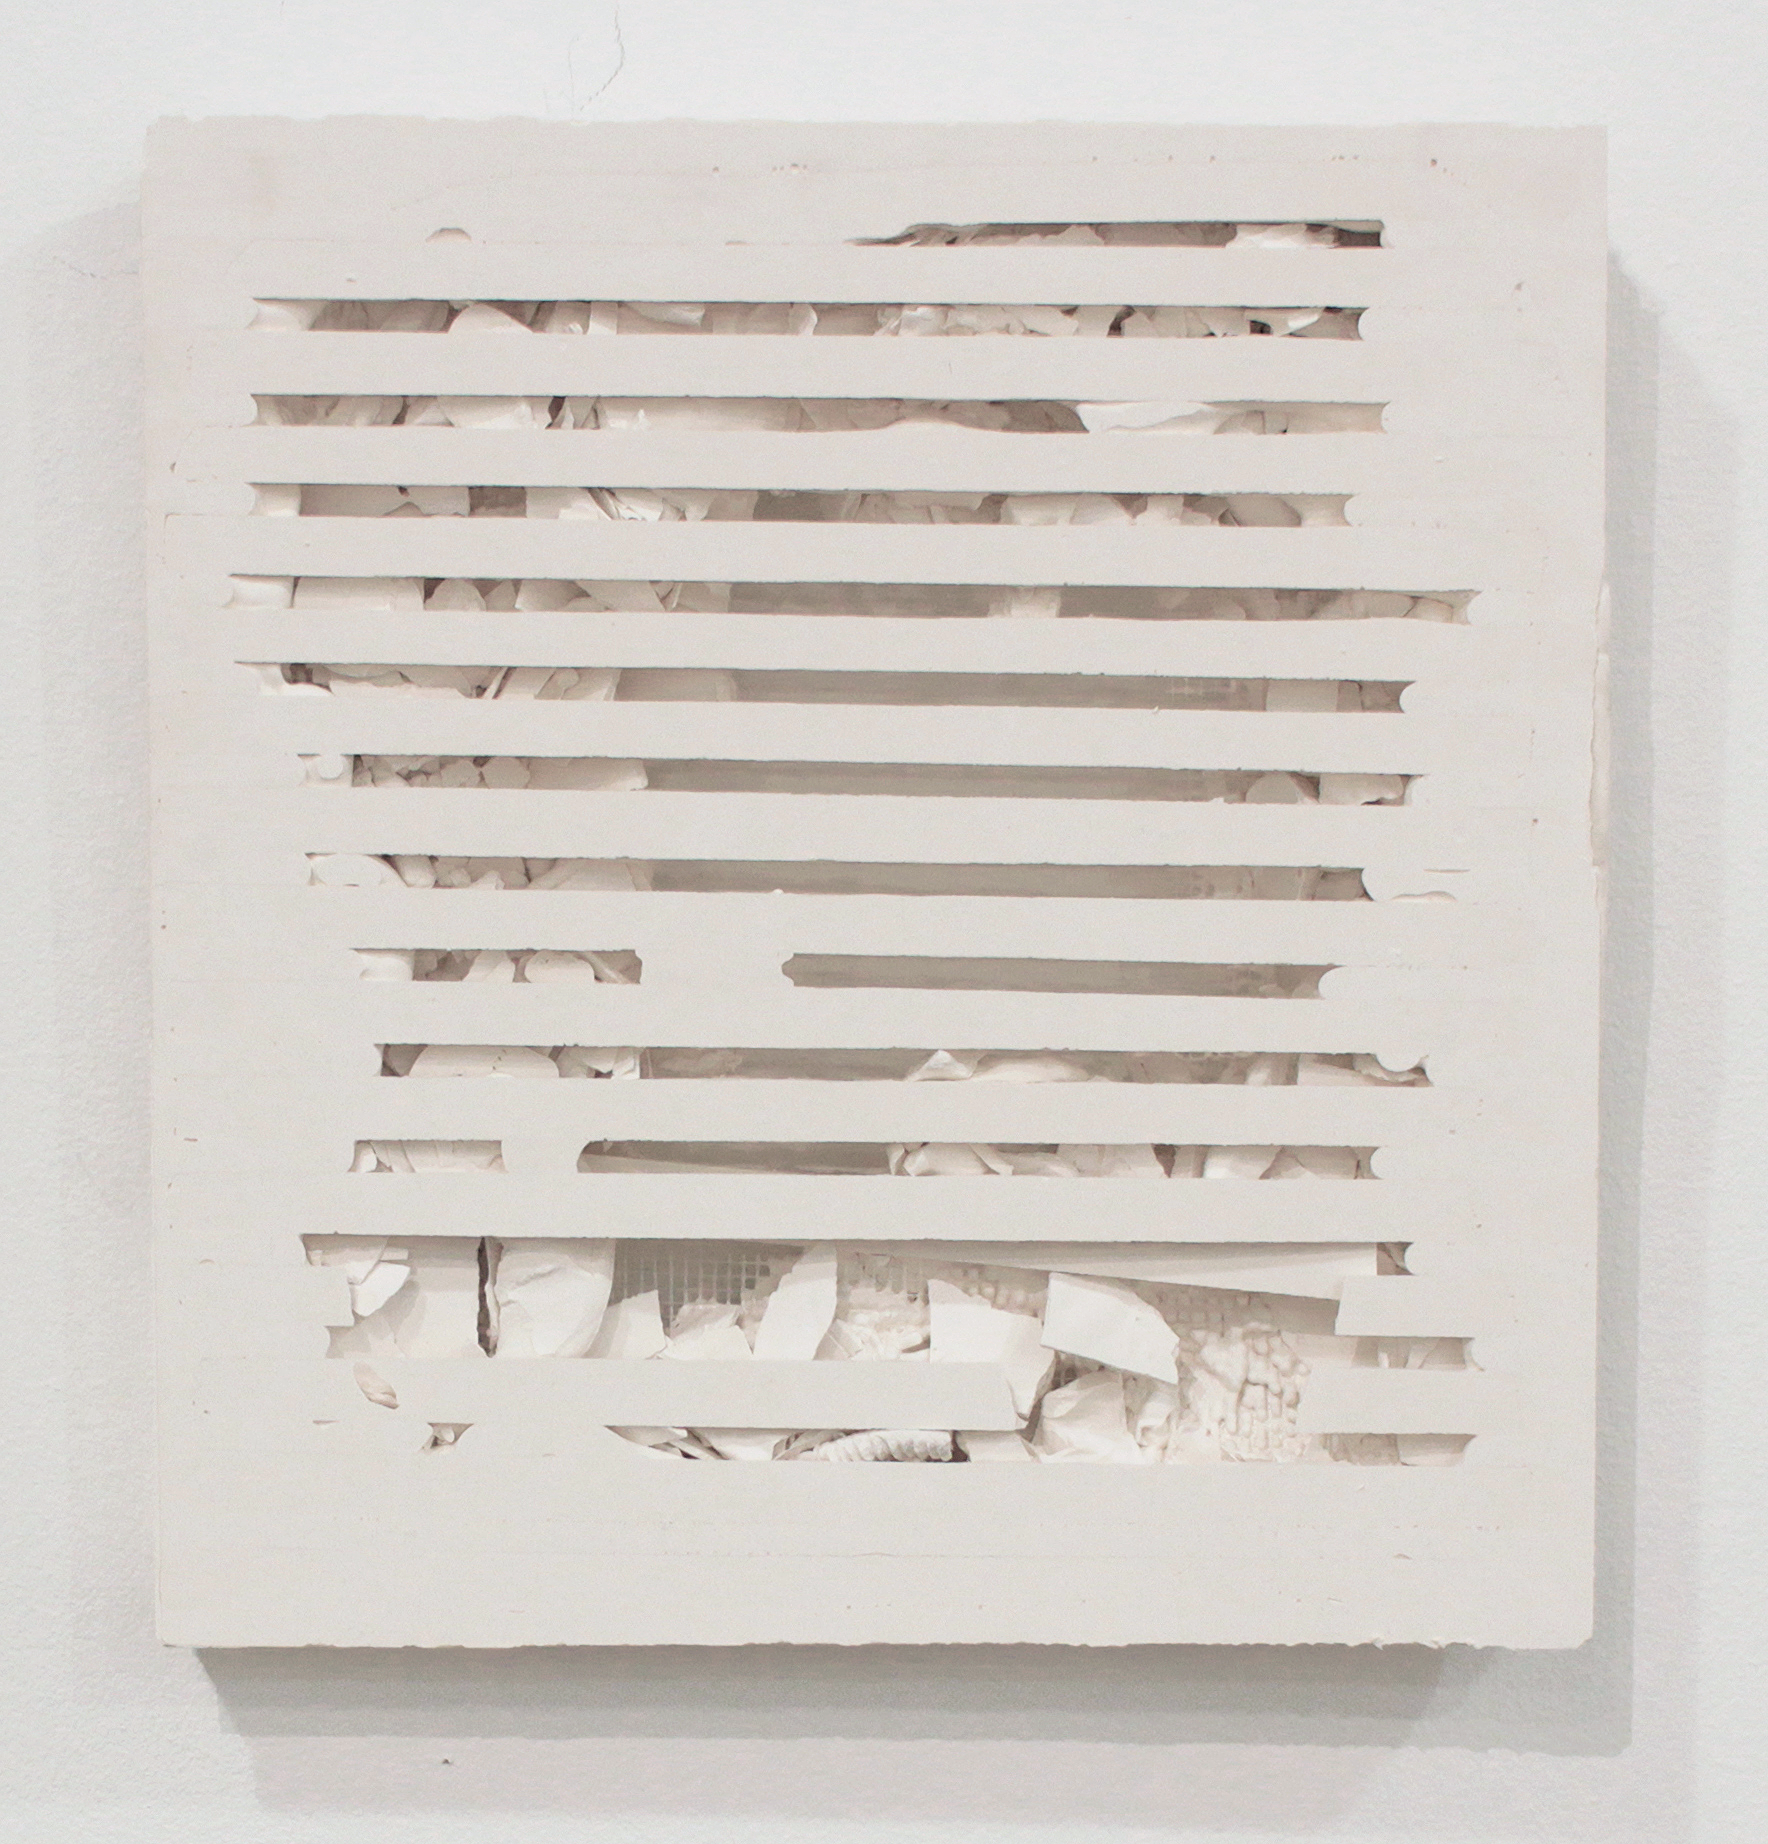 Blind Intuition, 2013